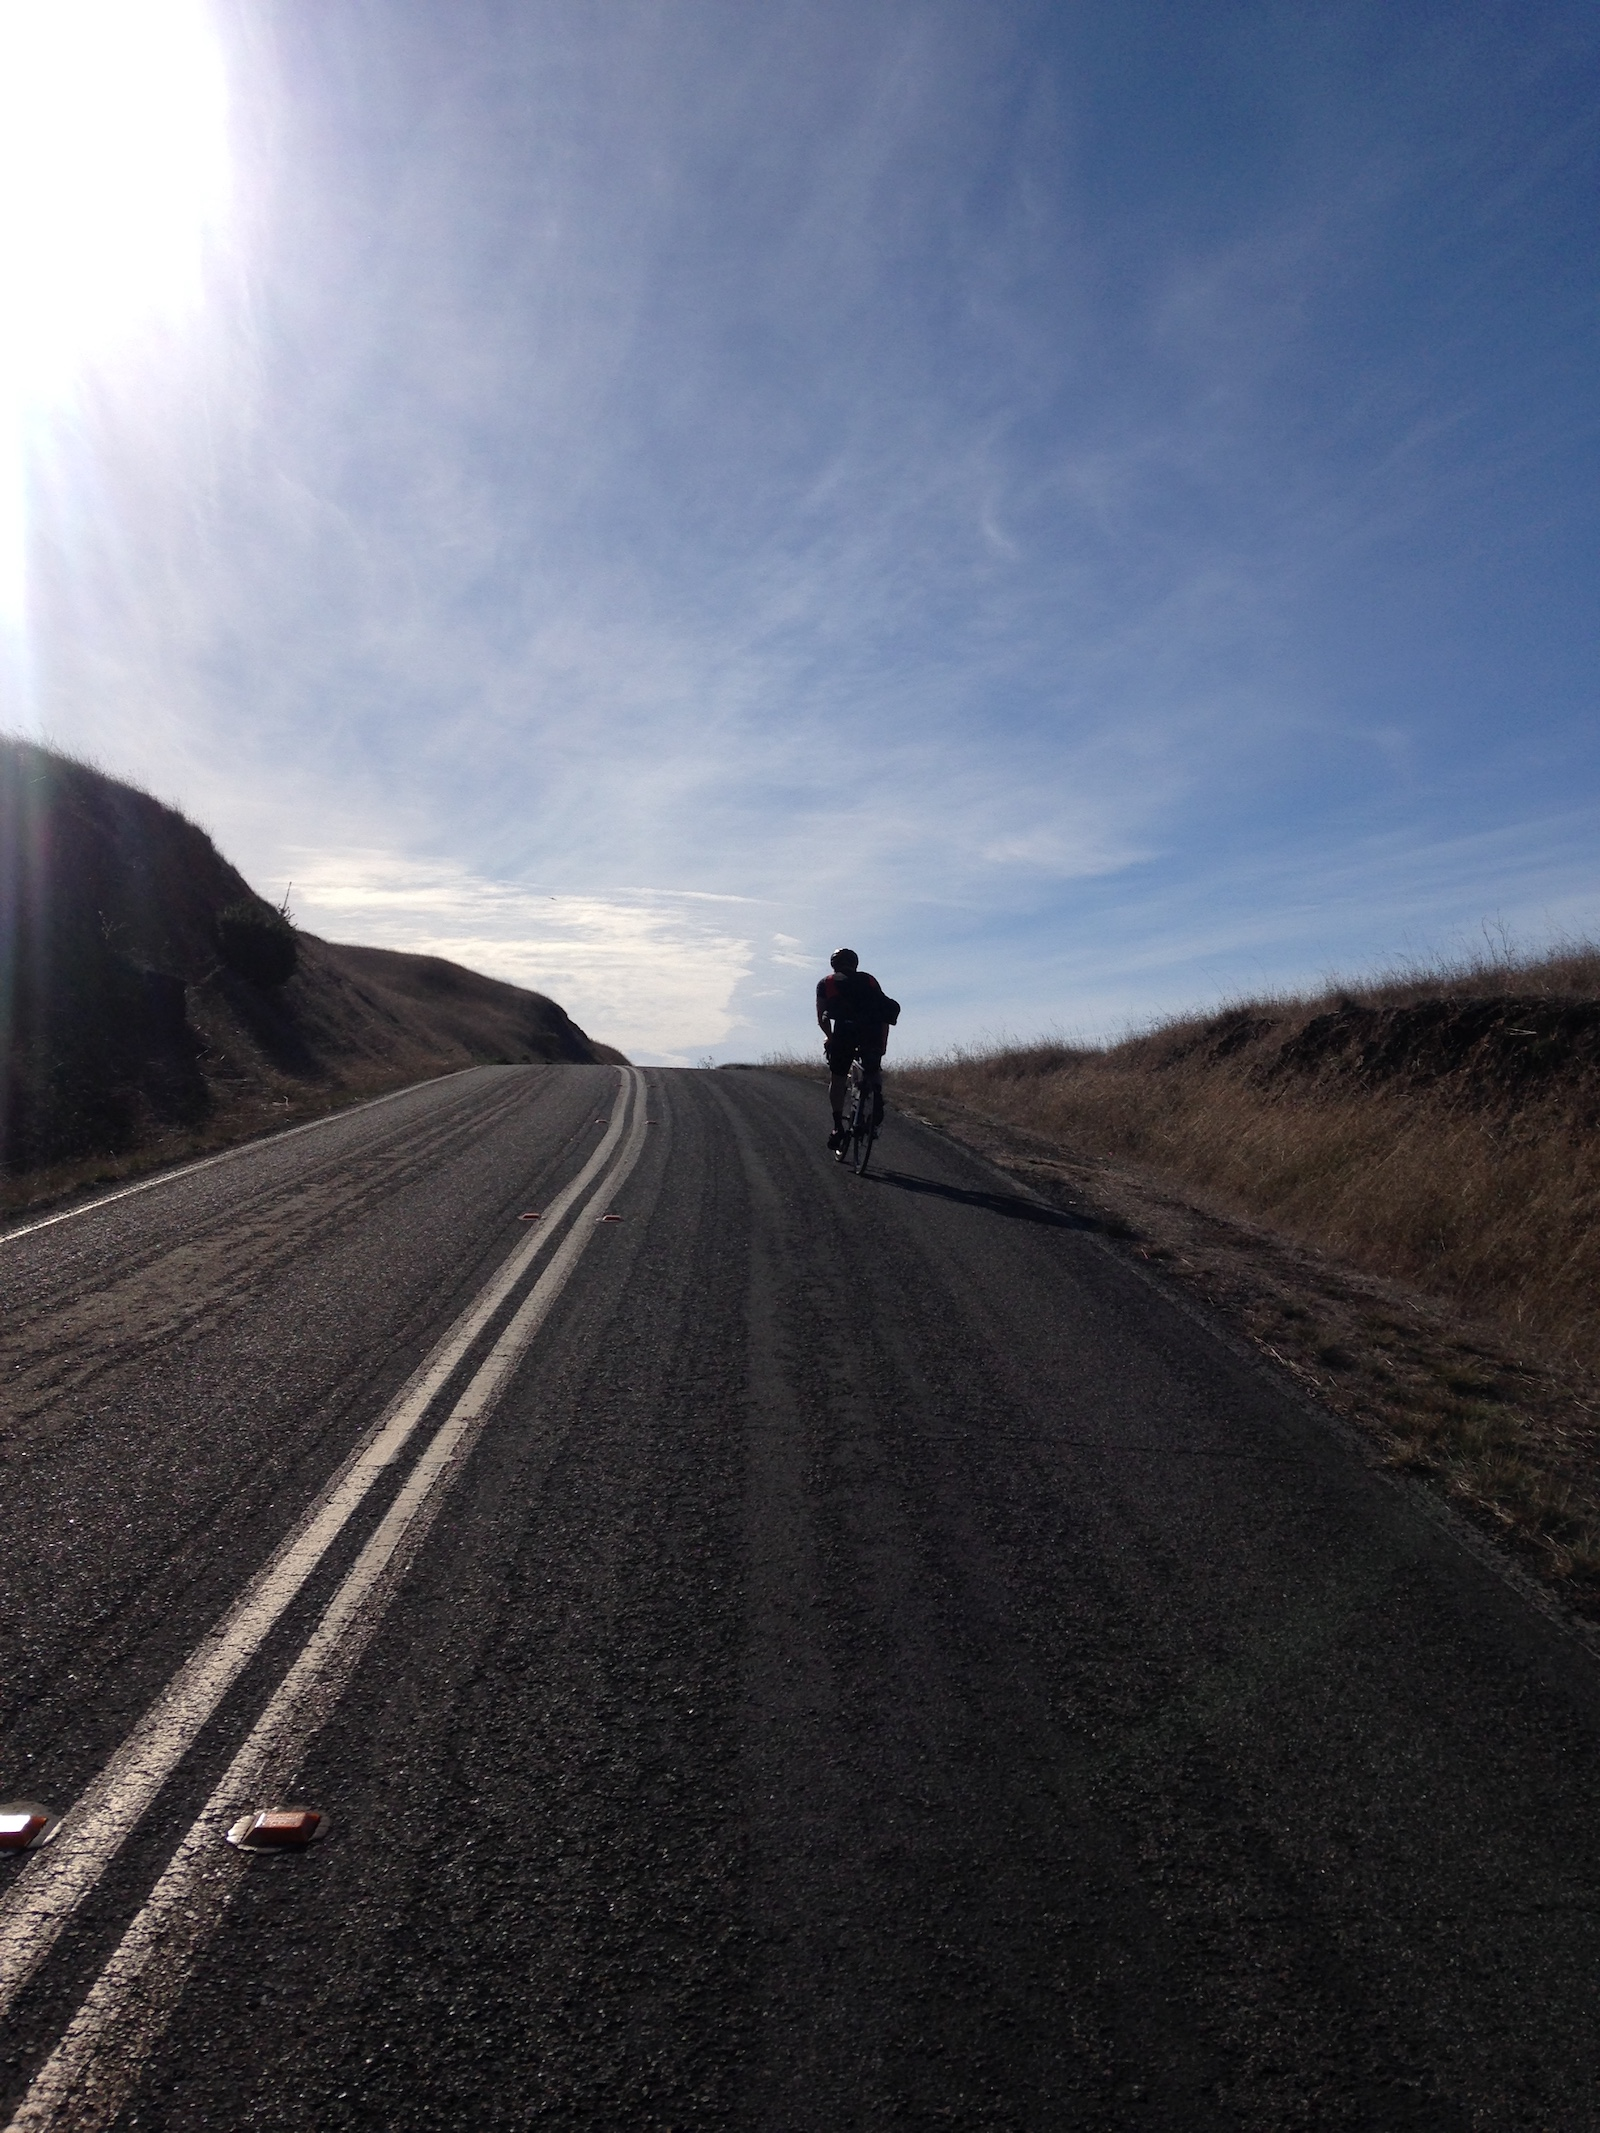 """Dana Williams, United States. """"""""Dancing"""" - After taking a quick pits stop, I rode to catch up to my friend Kyle Ulinder just as he crested the first of seven small punchy climbs on a popular ridge in Marin County (California) called Seven Sisters. I pulled out my iPhone from my back pocket and snapped this photo."""" Smartphone / Action Cam. @danawilliams26"""